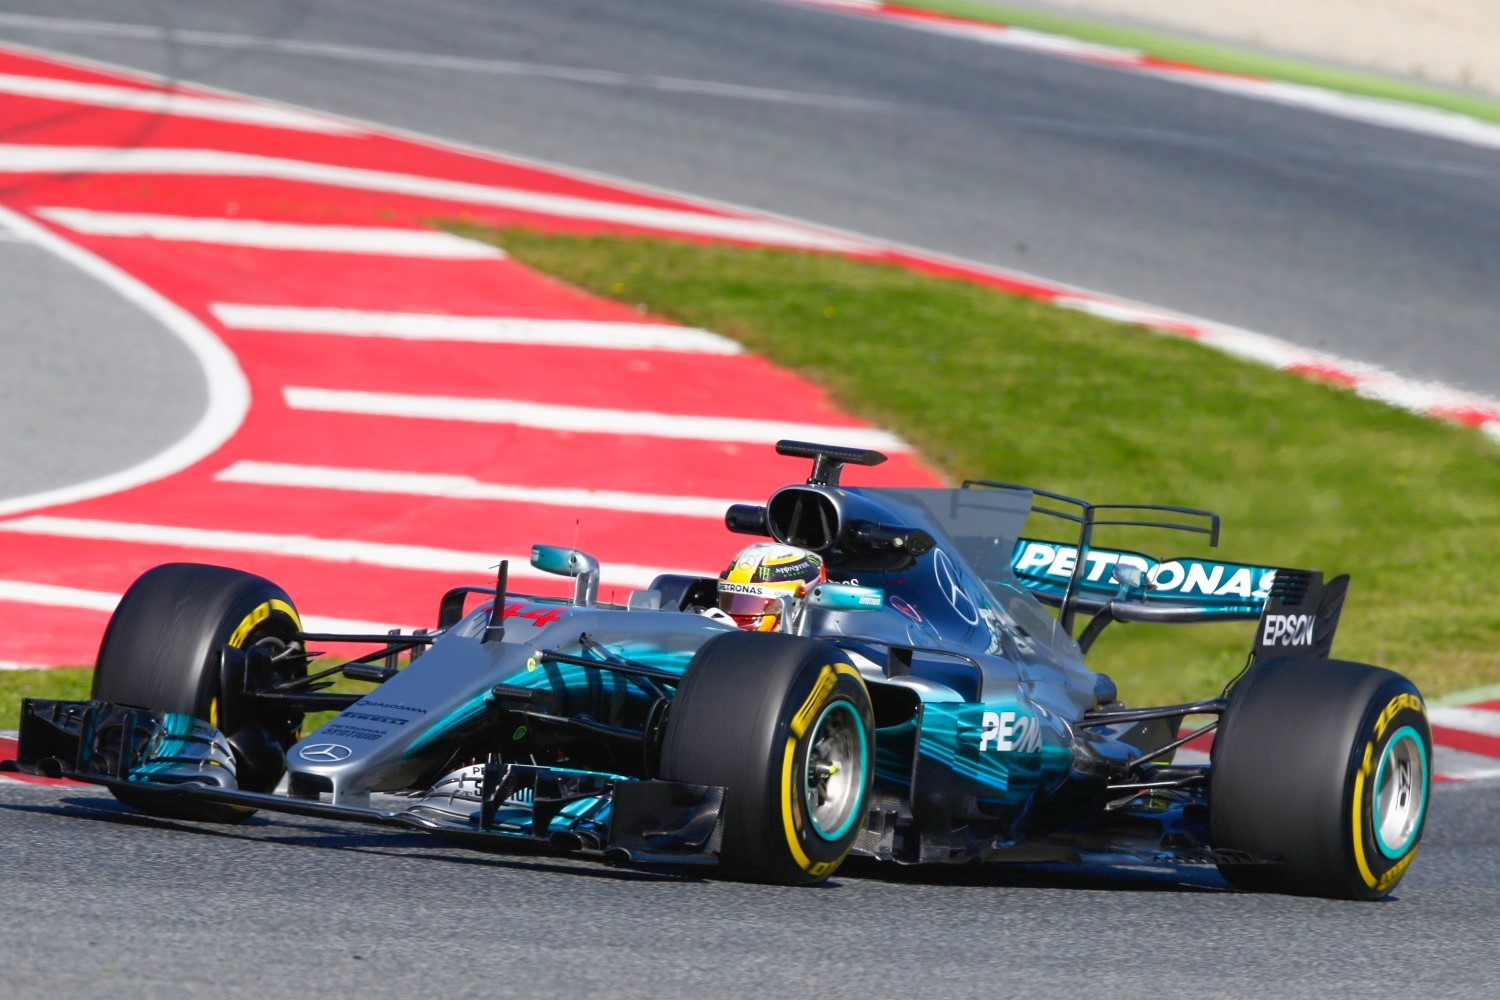 Mercedes still the one to beat